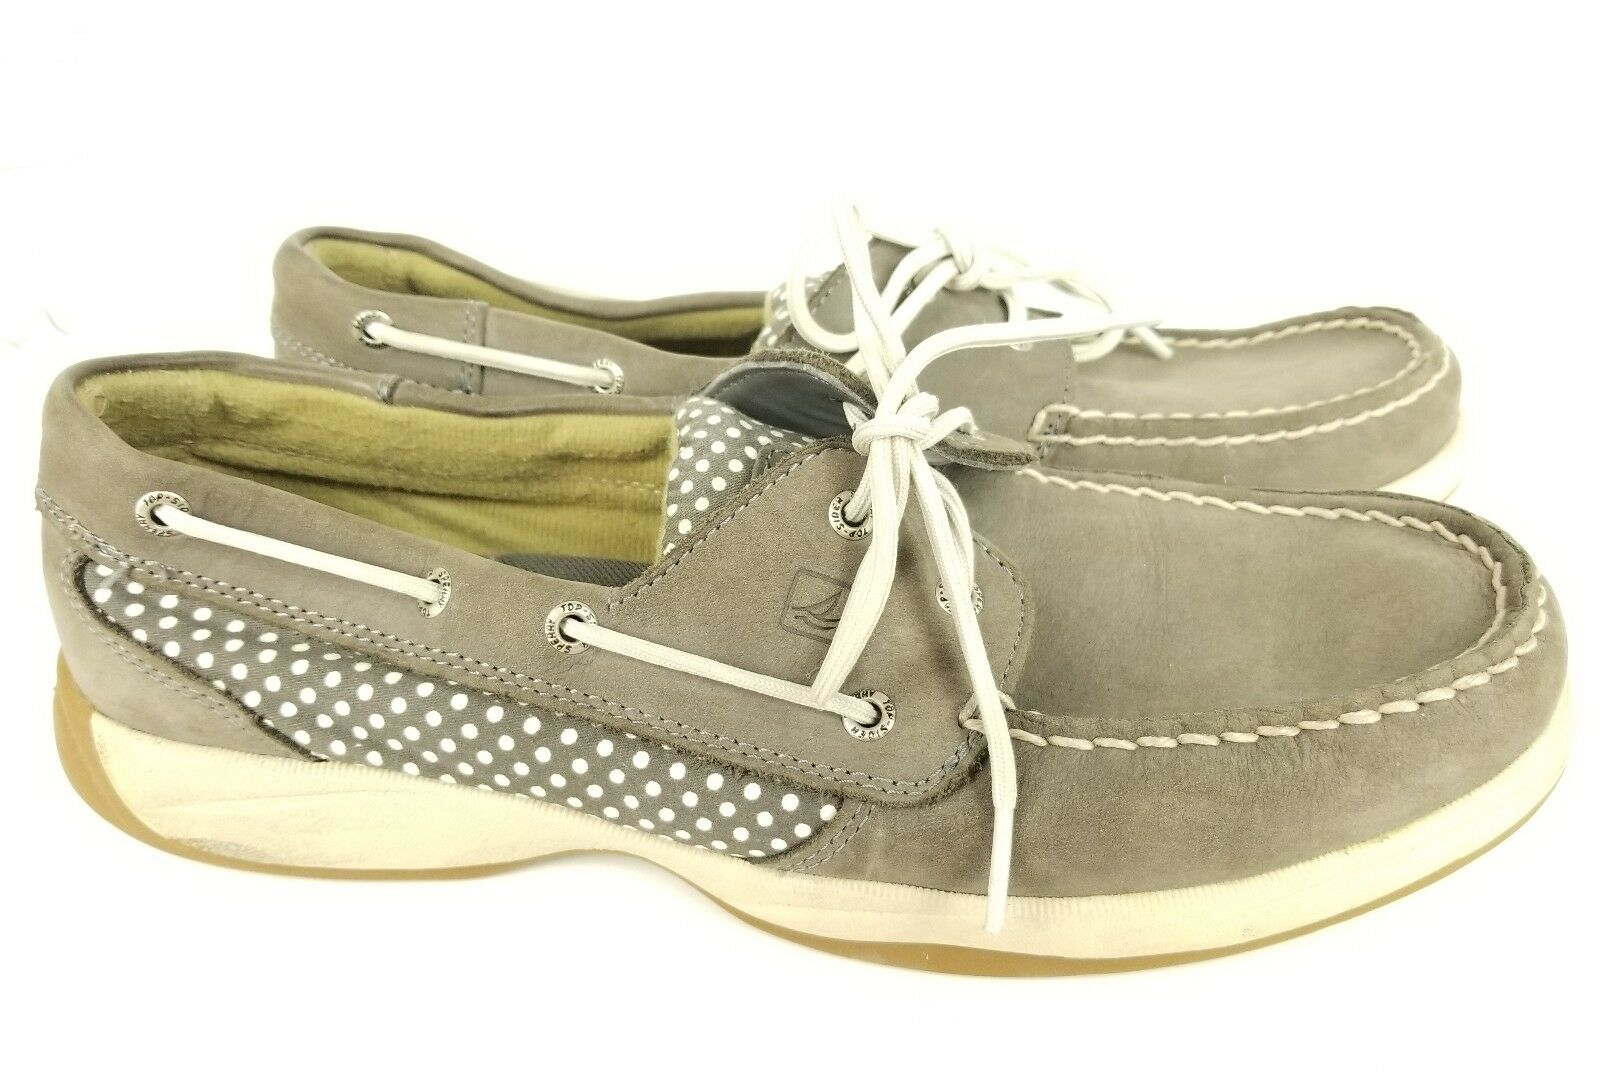 Sperry Top Sider Womens Size 11 Medium Tan Leather Polka Dot Boat shoes STS90818